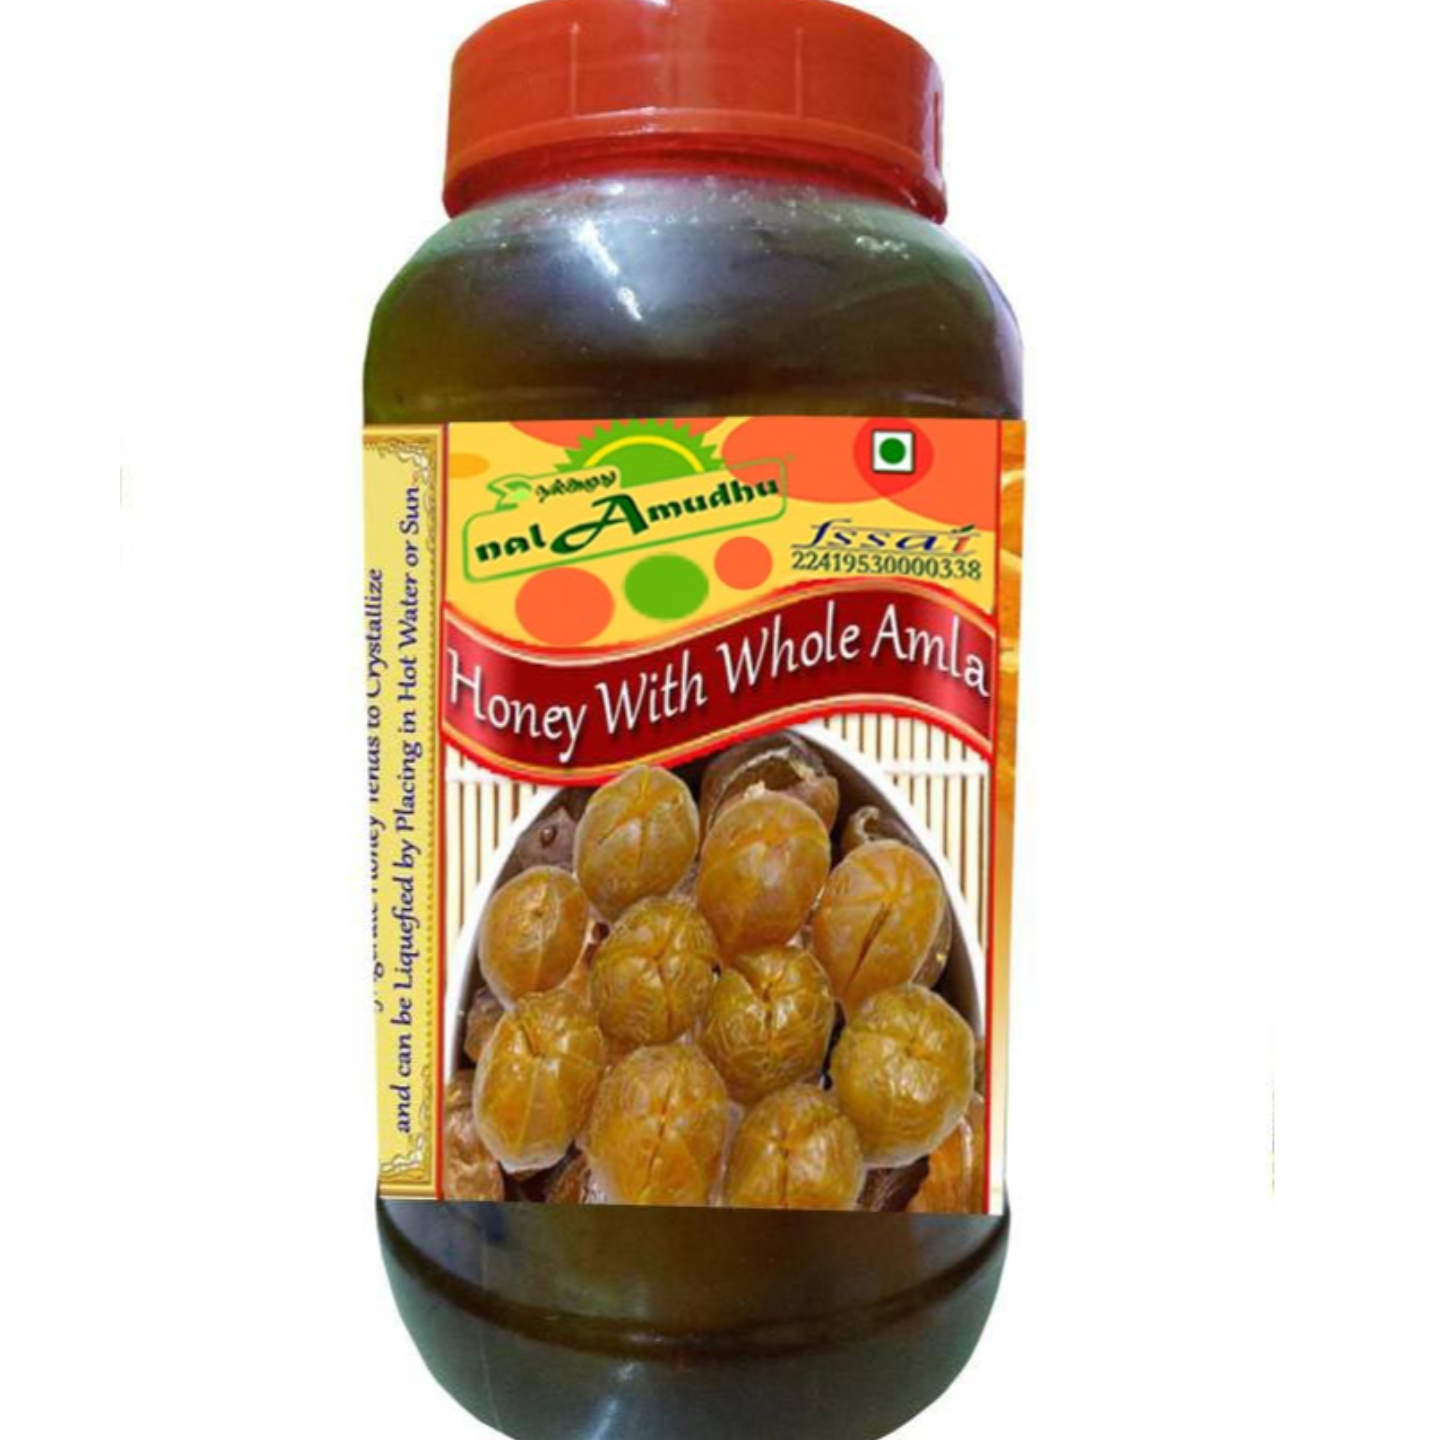 nalAmudhu Premium Whole Amla in Honey Preserve